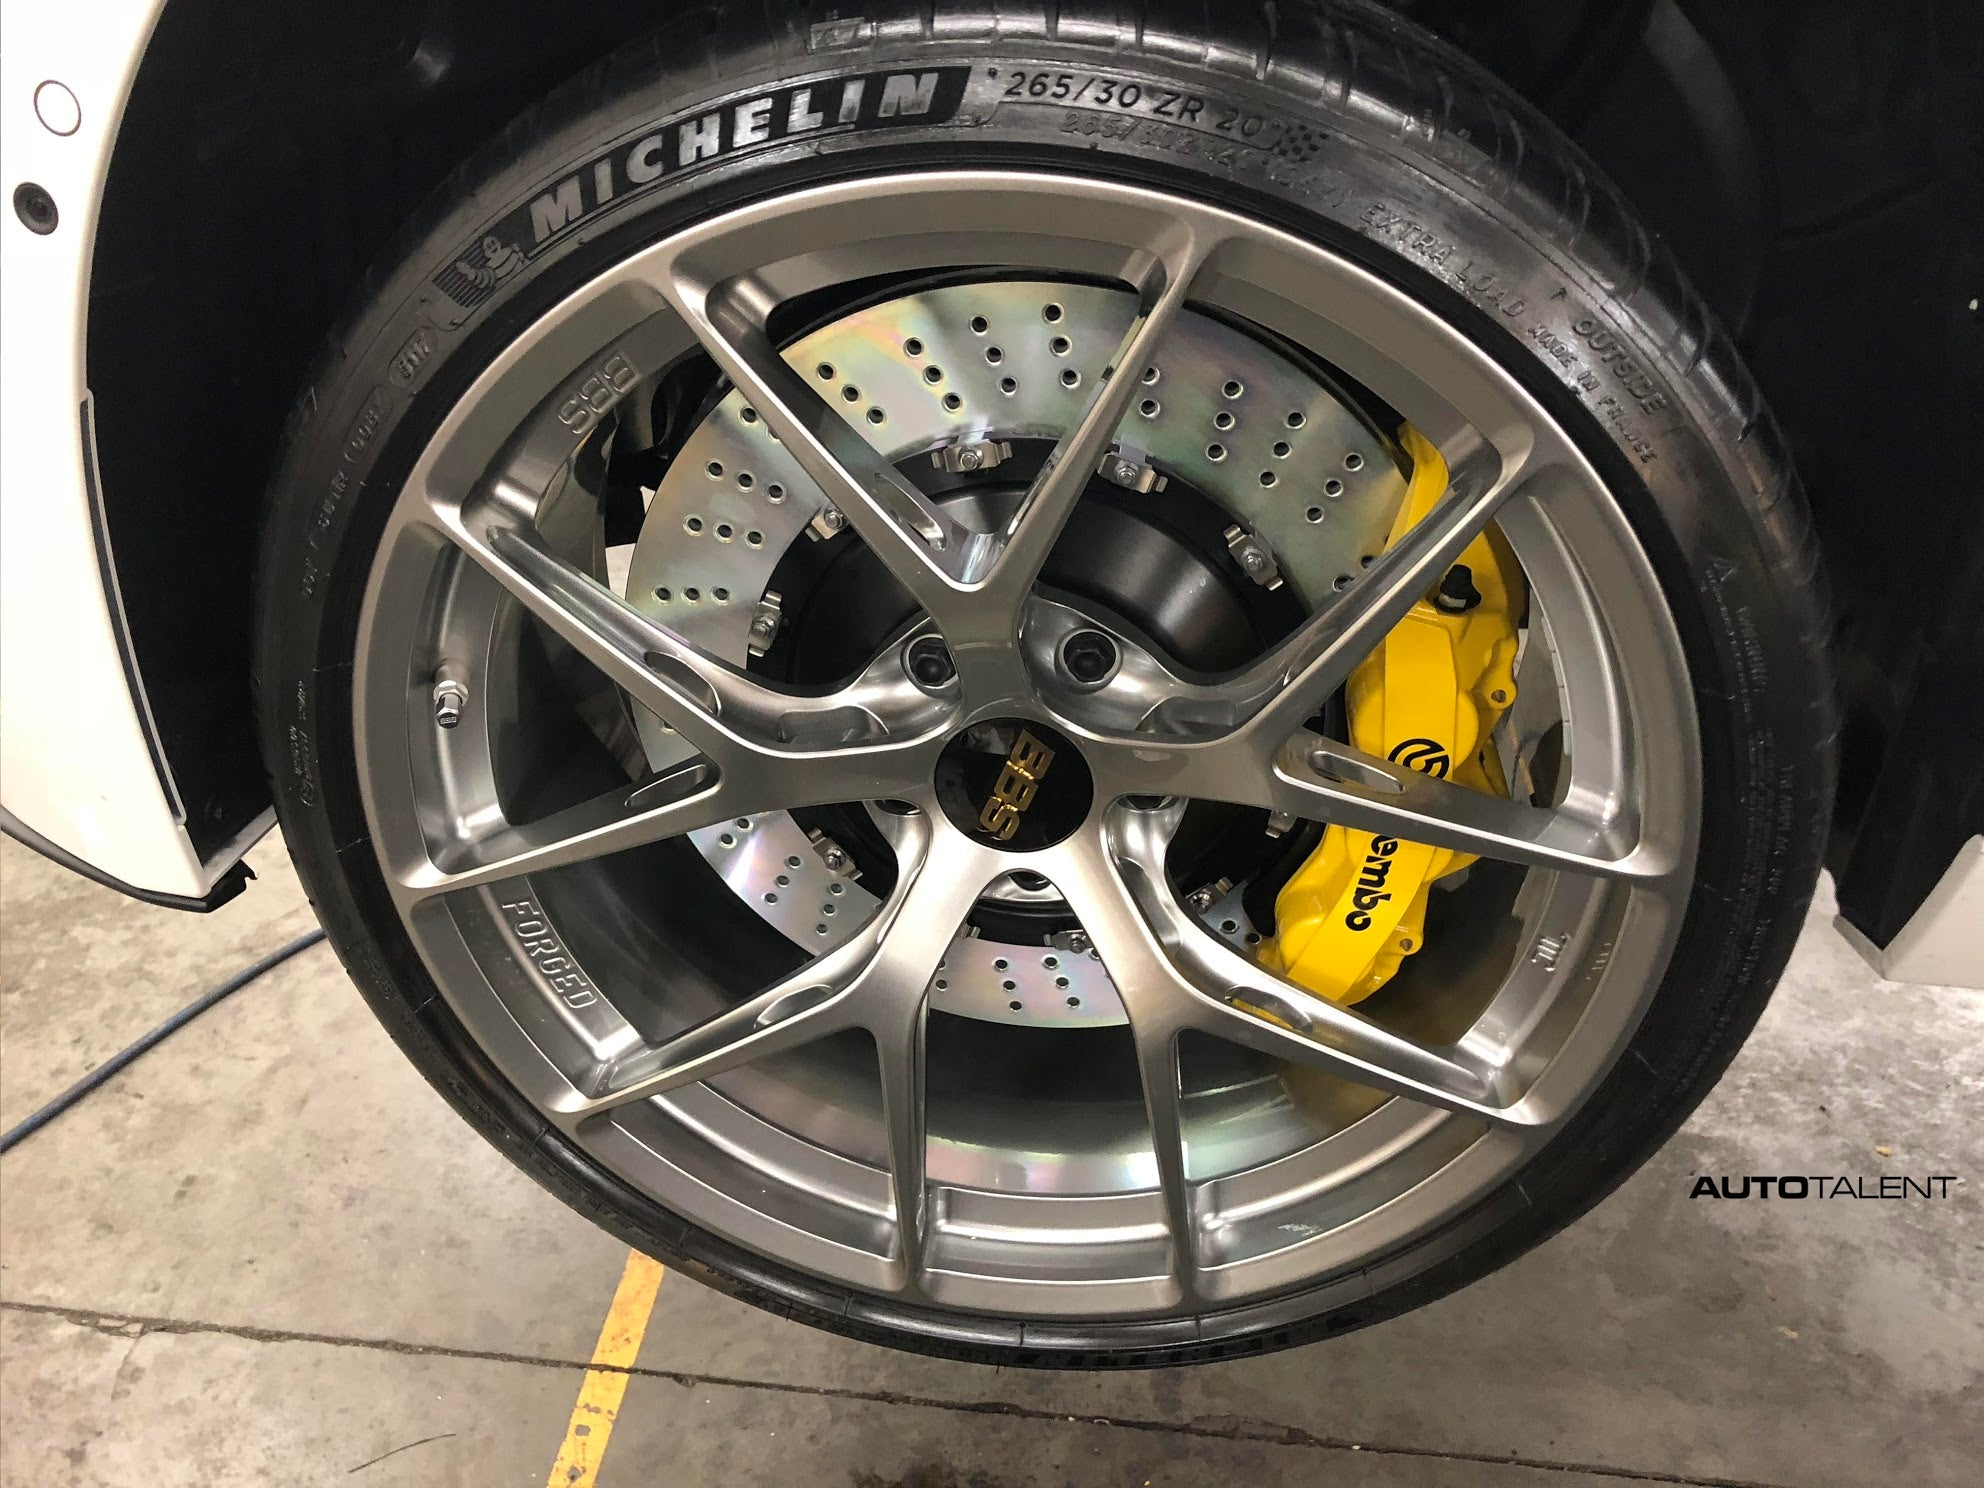 BBS FI-R FIR Brembo BBK Big Brake Kit yellow caliper drilled rotors